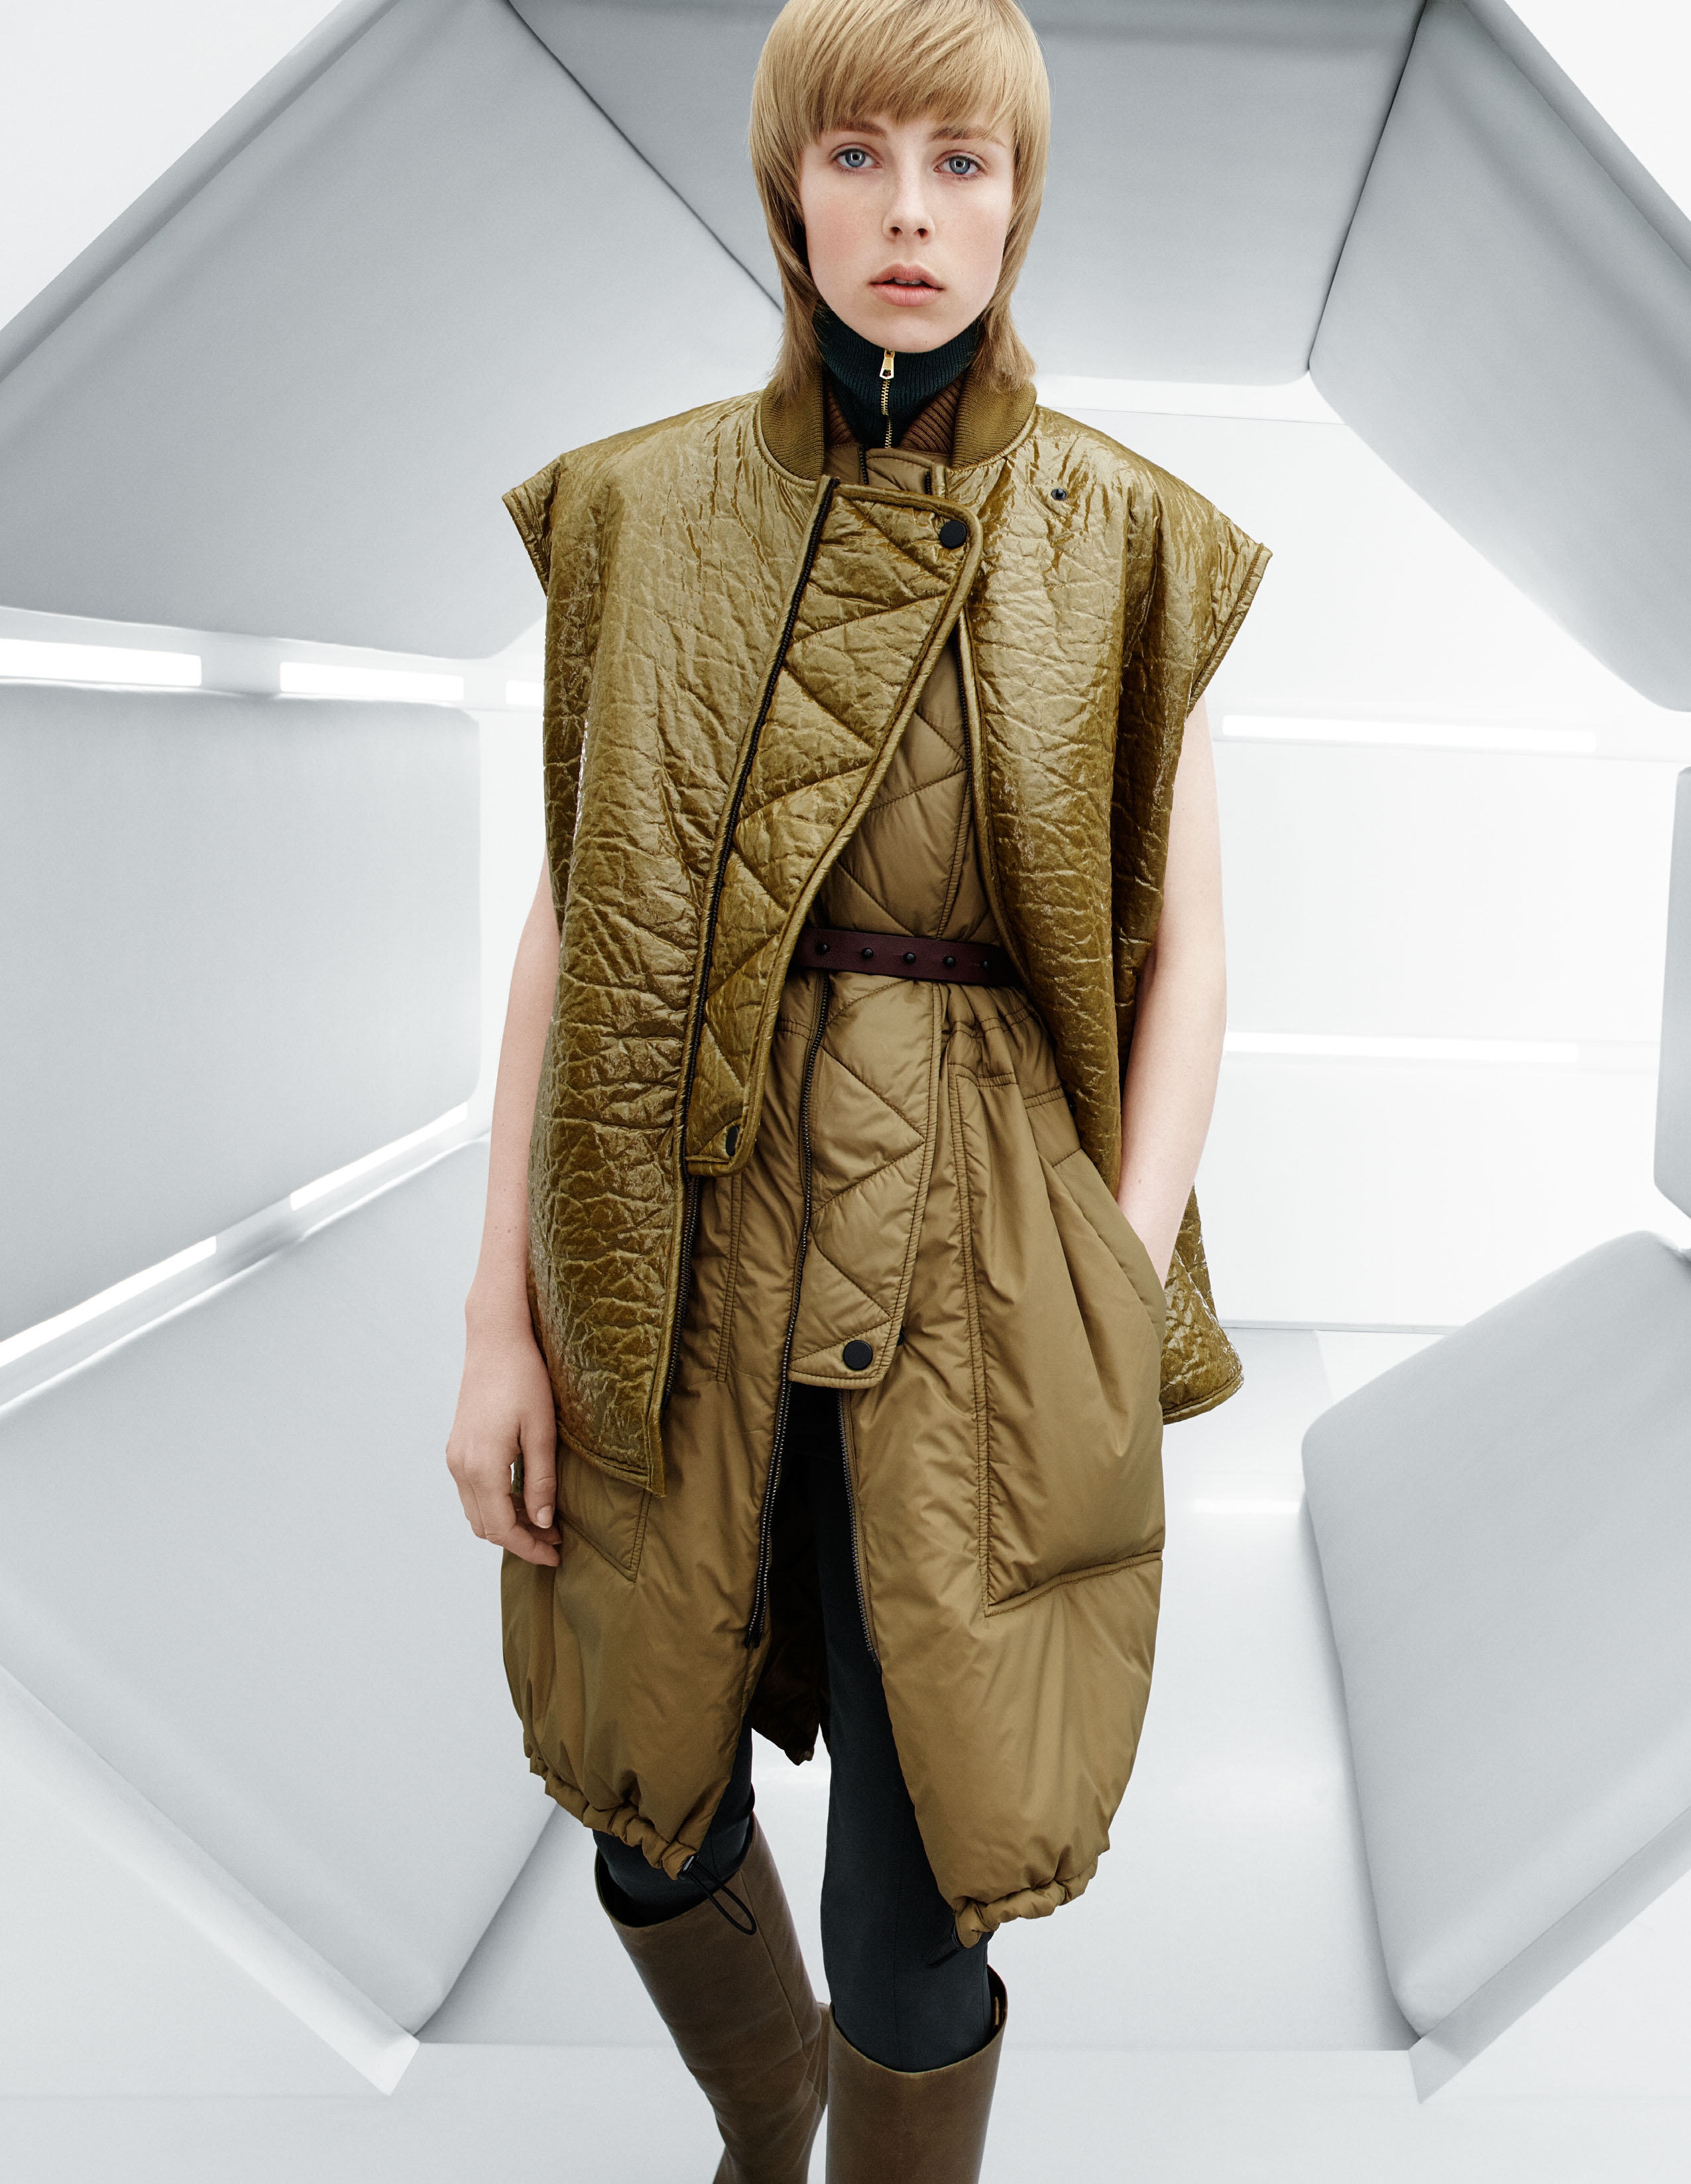 Campbell edie for h&m studio fall campaign catalog photo